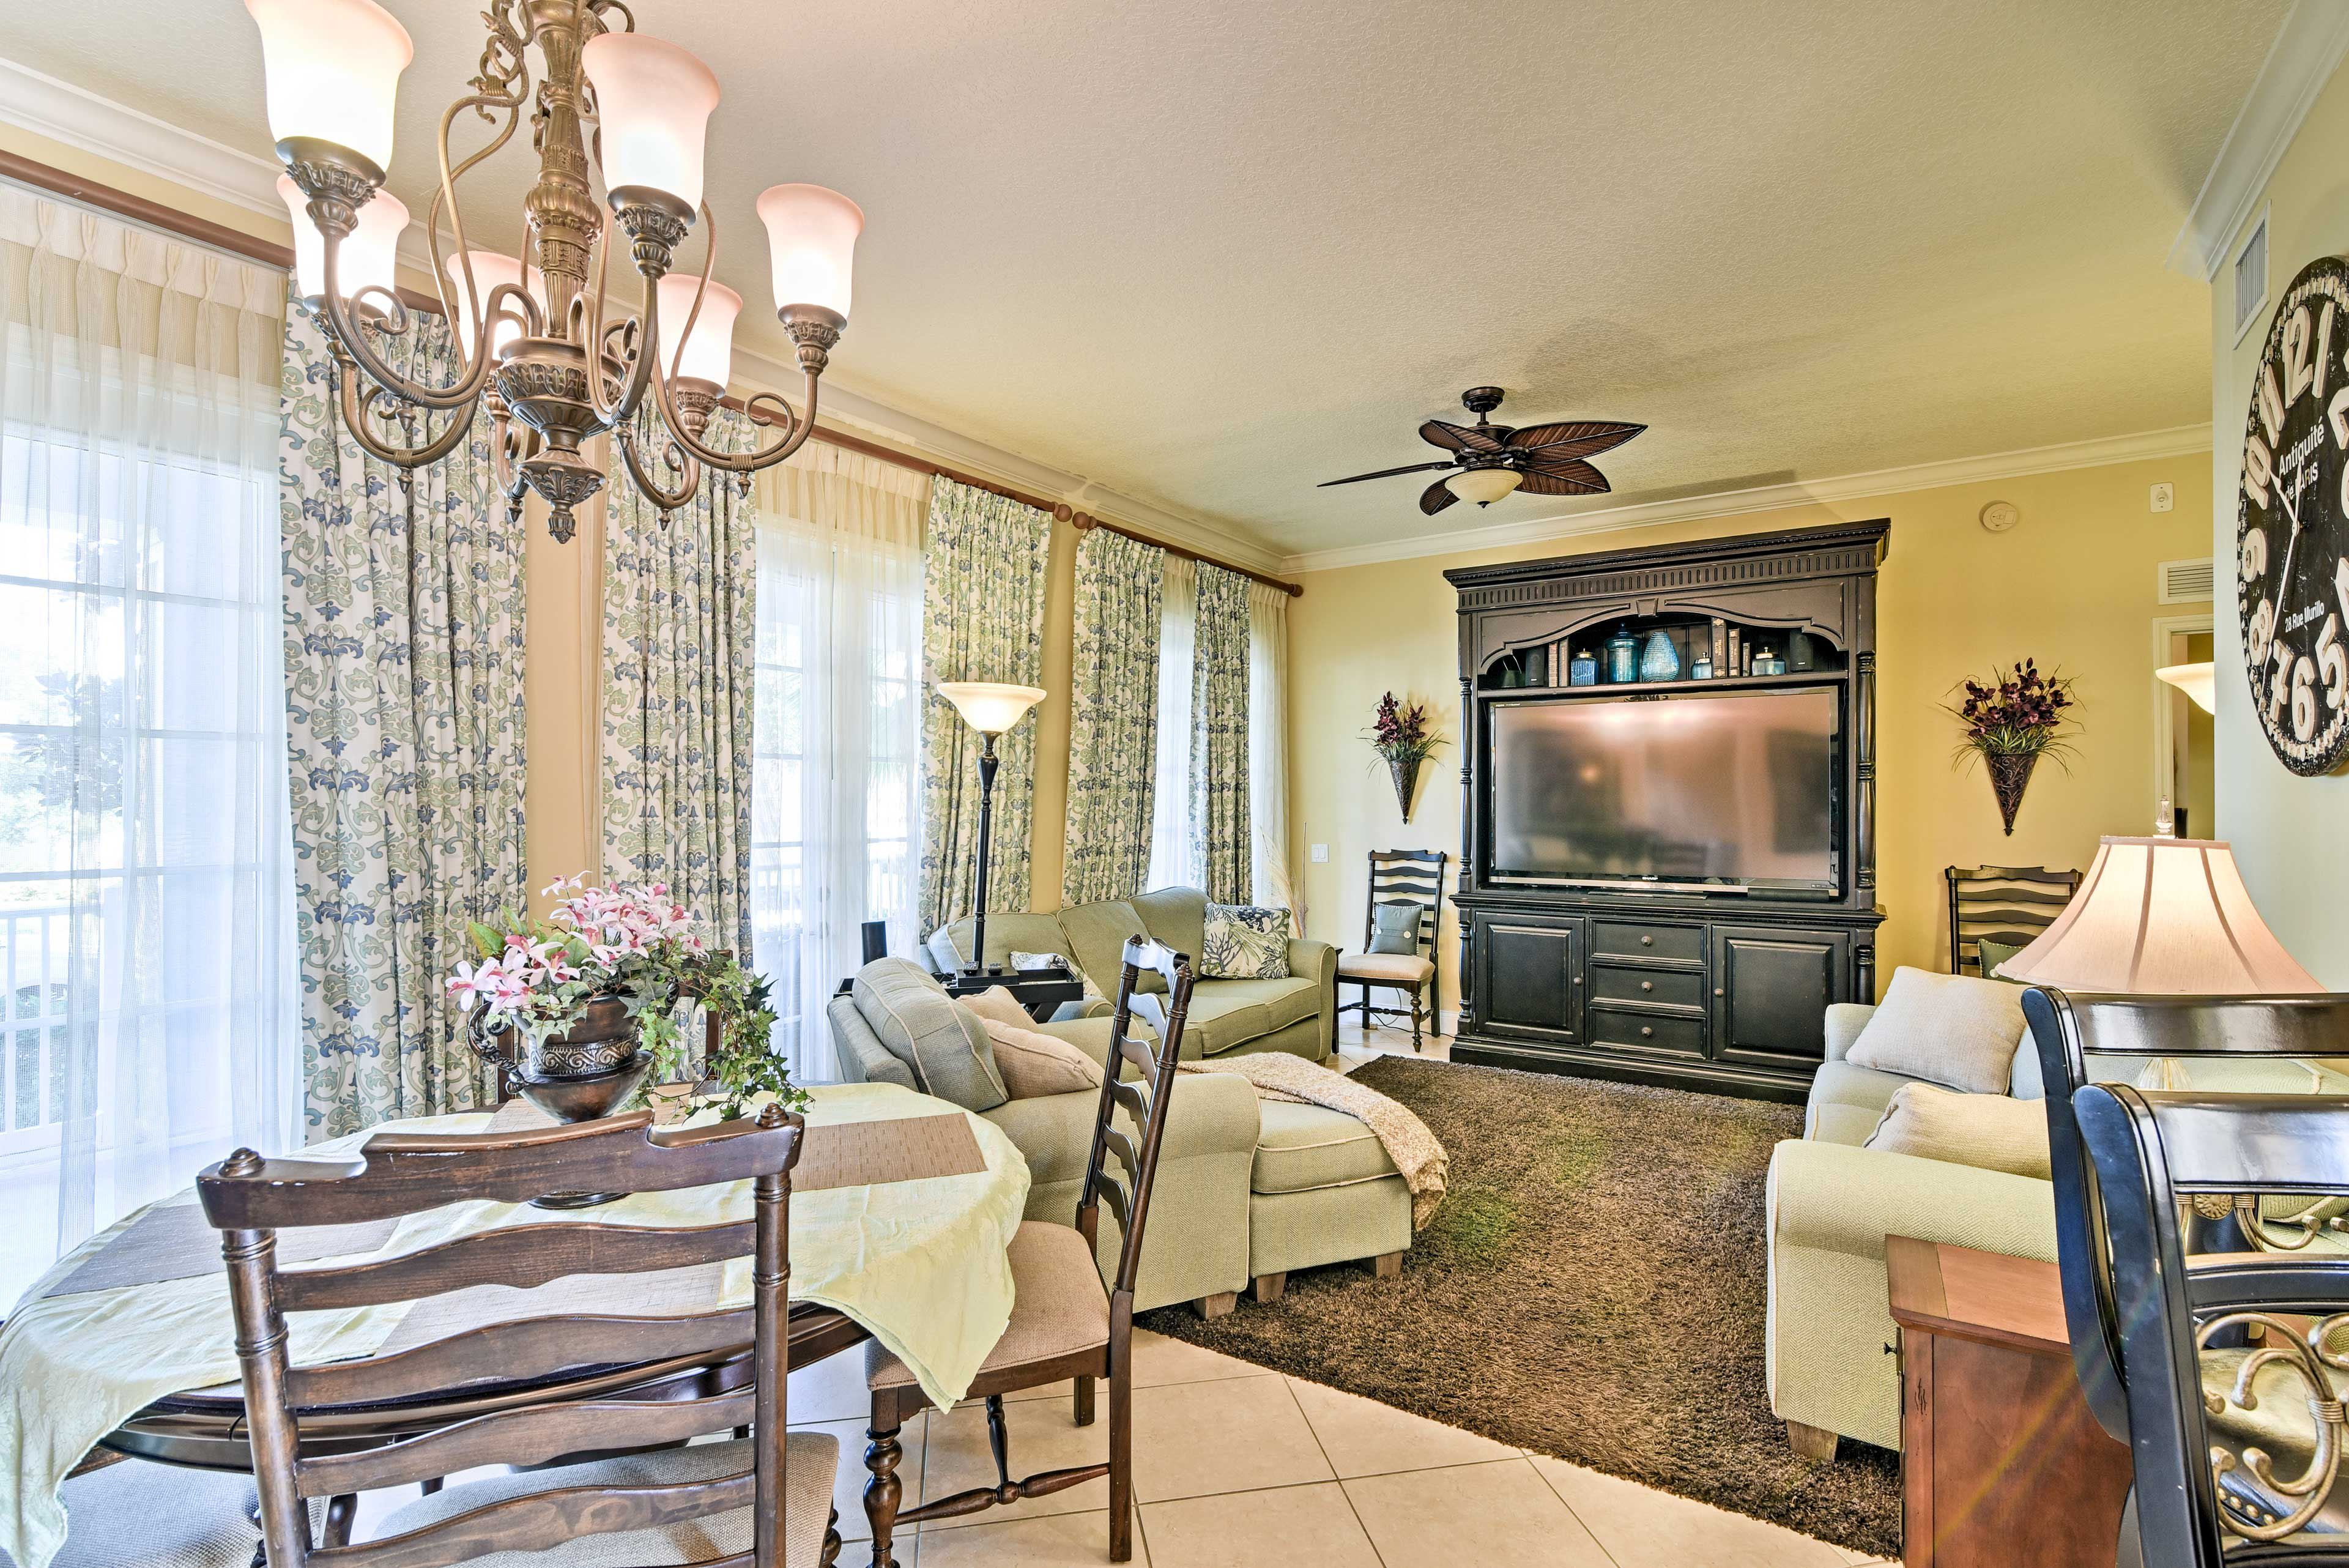 Living Room | Central Air Conditioning & Heating | Free WiFi